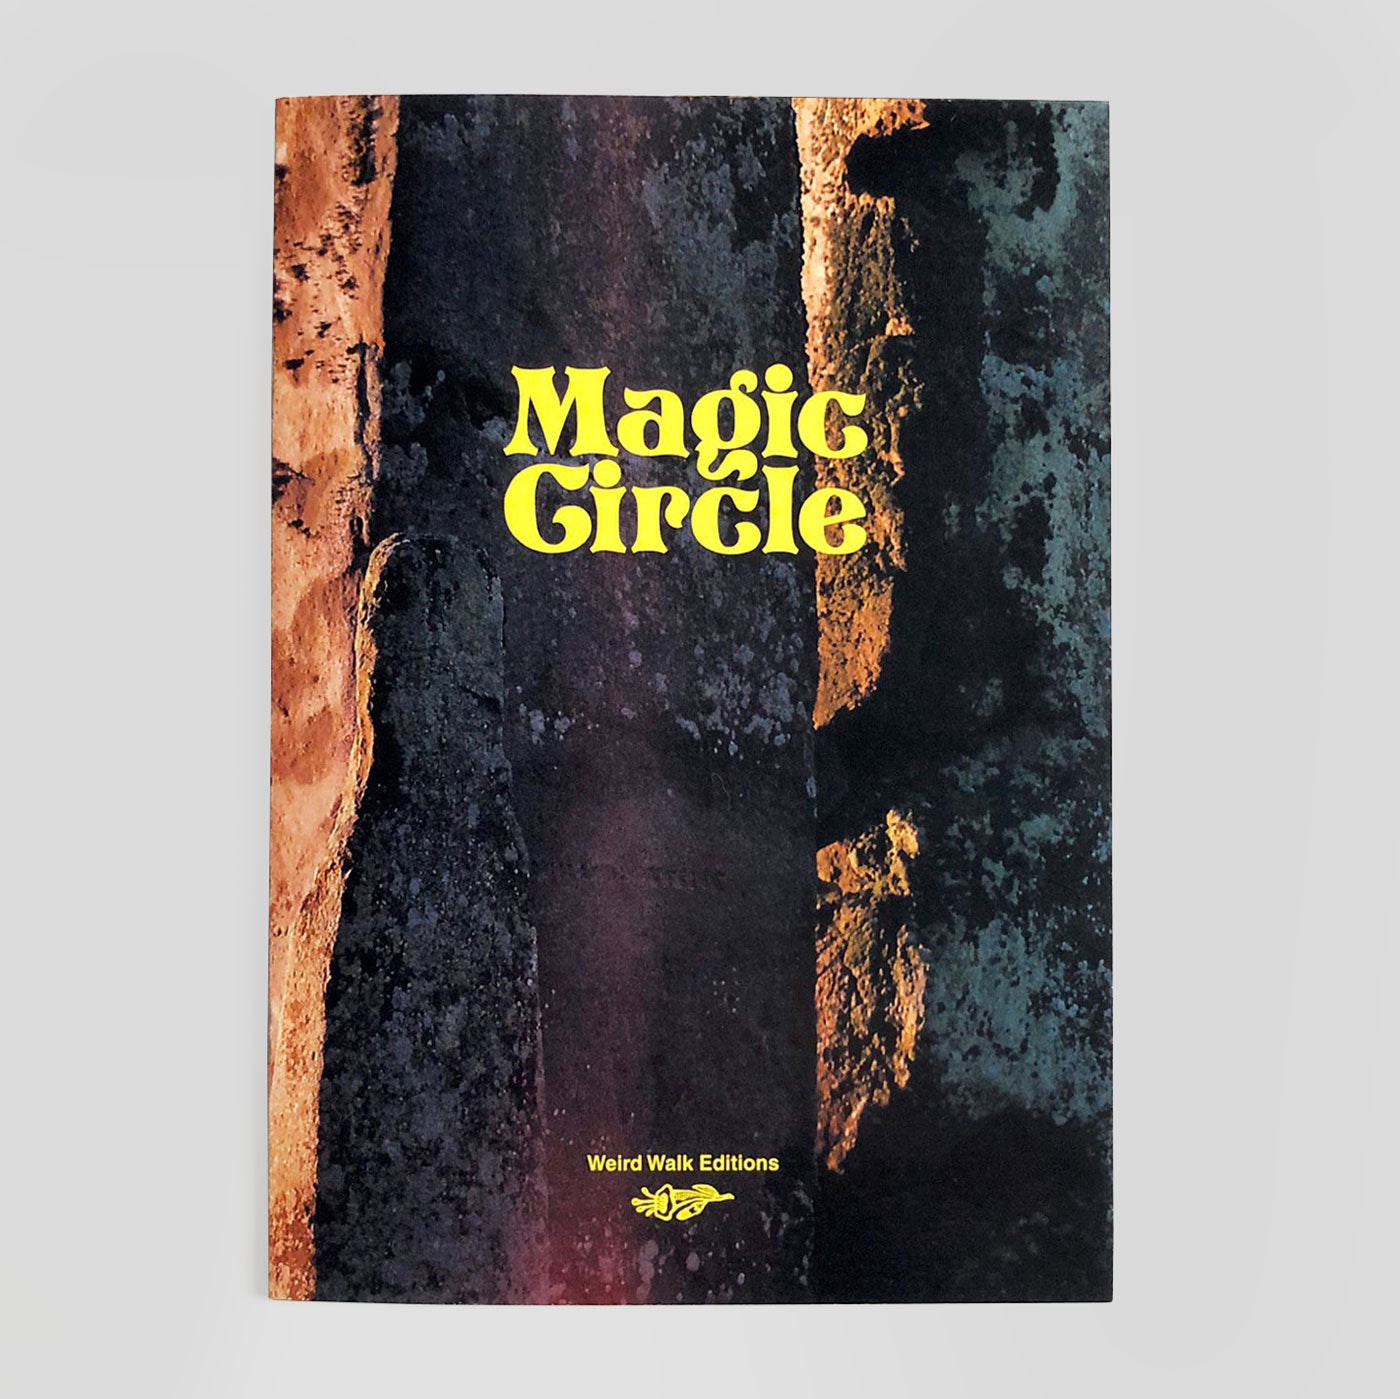 Magic Circle - Weird Walk Editions - Colours May Vary